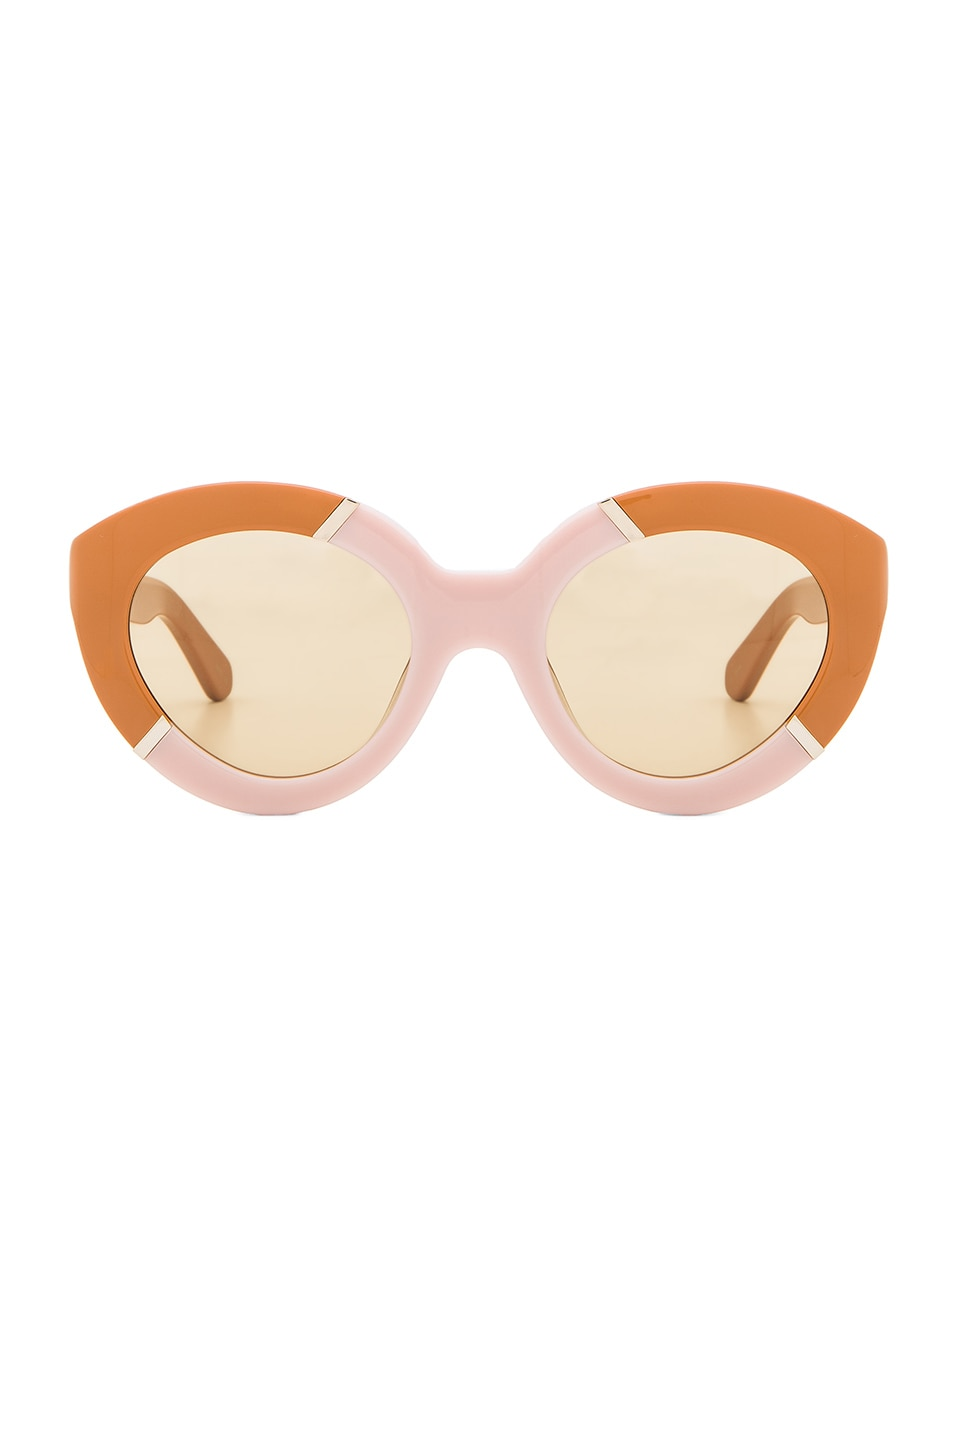 Karen Walker Flowerpatch in Tan & Dusty Pink & Gold